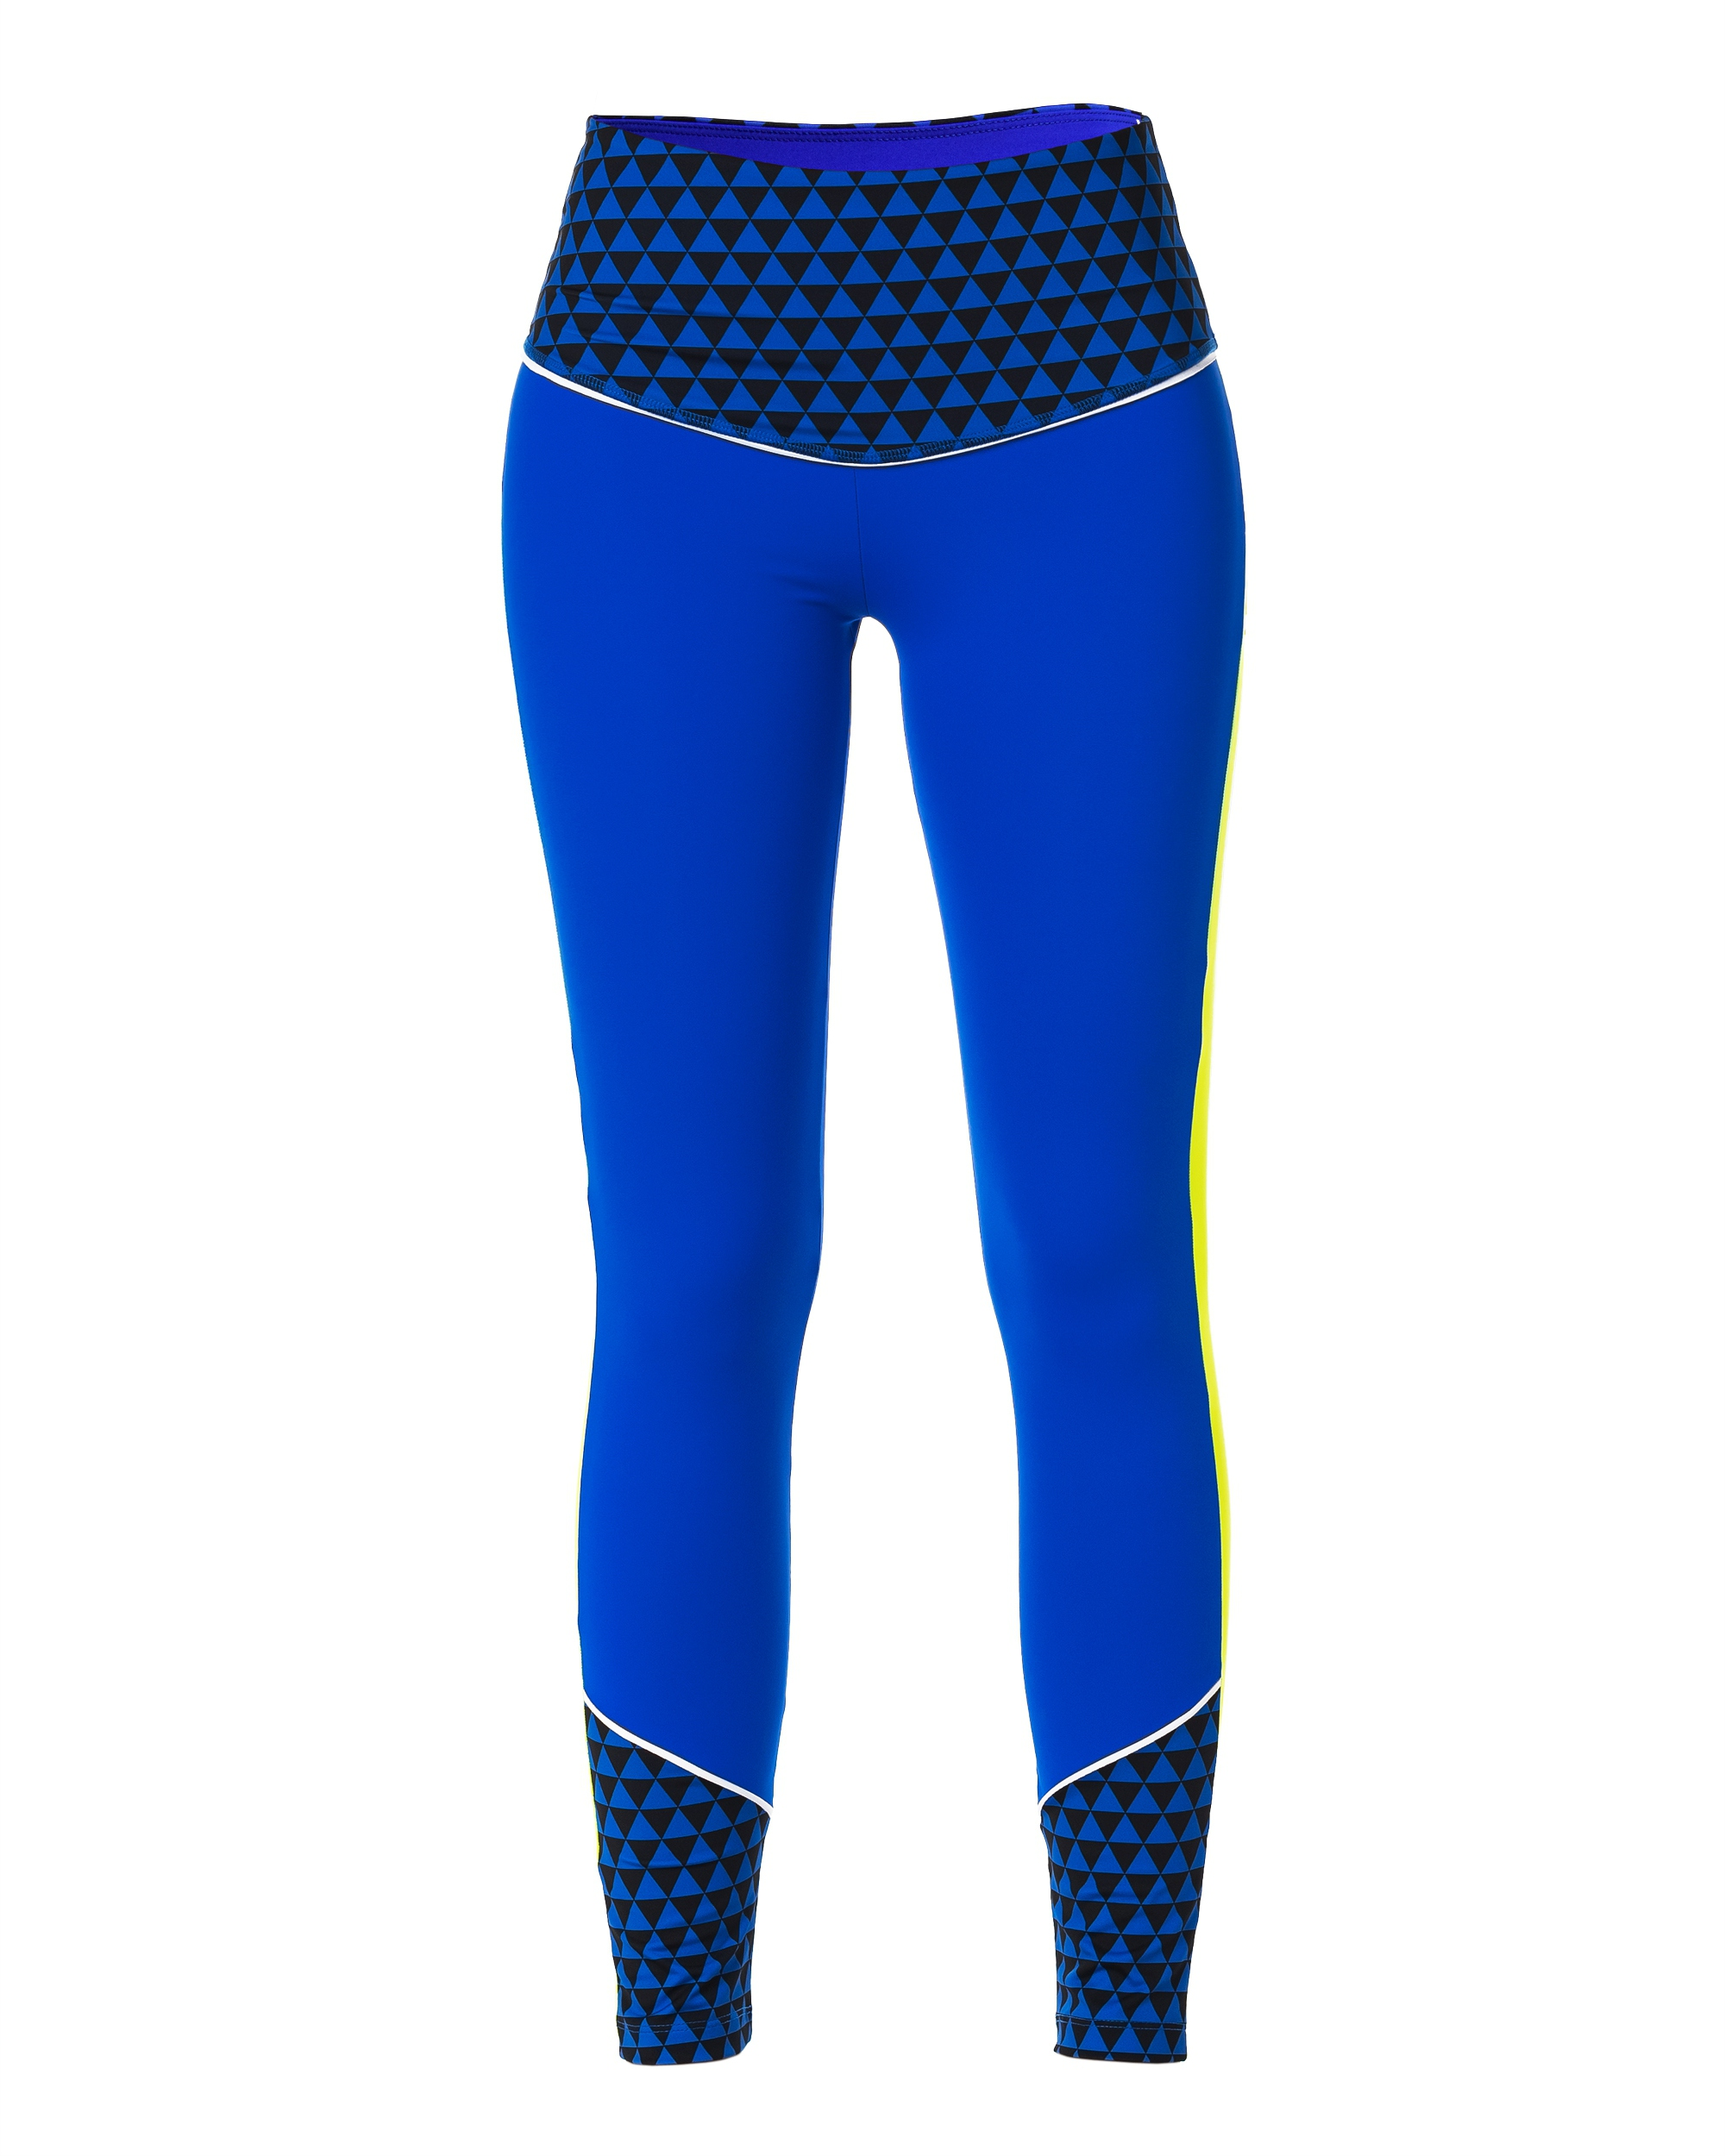 Women Leggings Sport Klein Leggins Made With One Of The Best